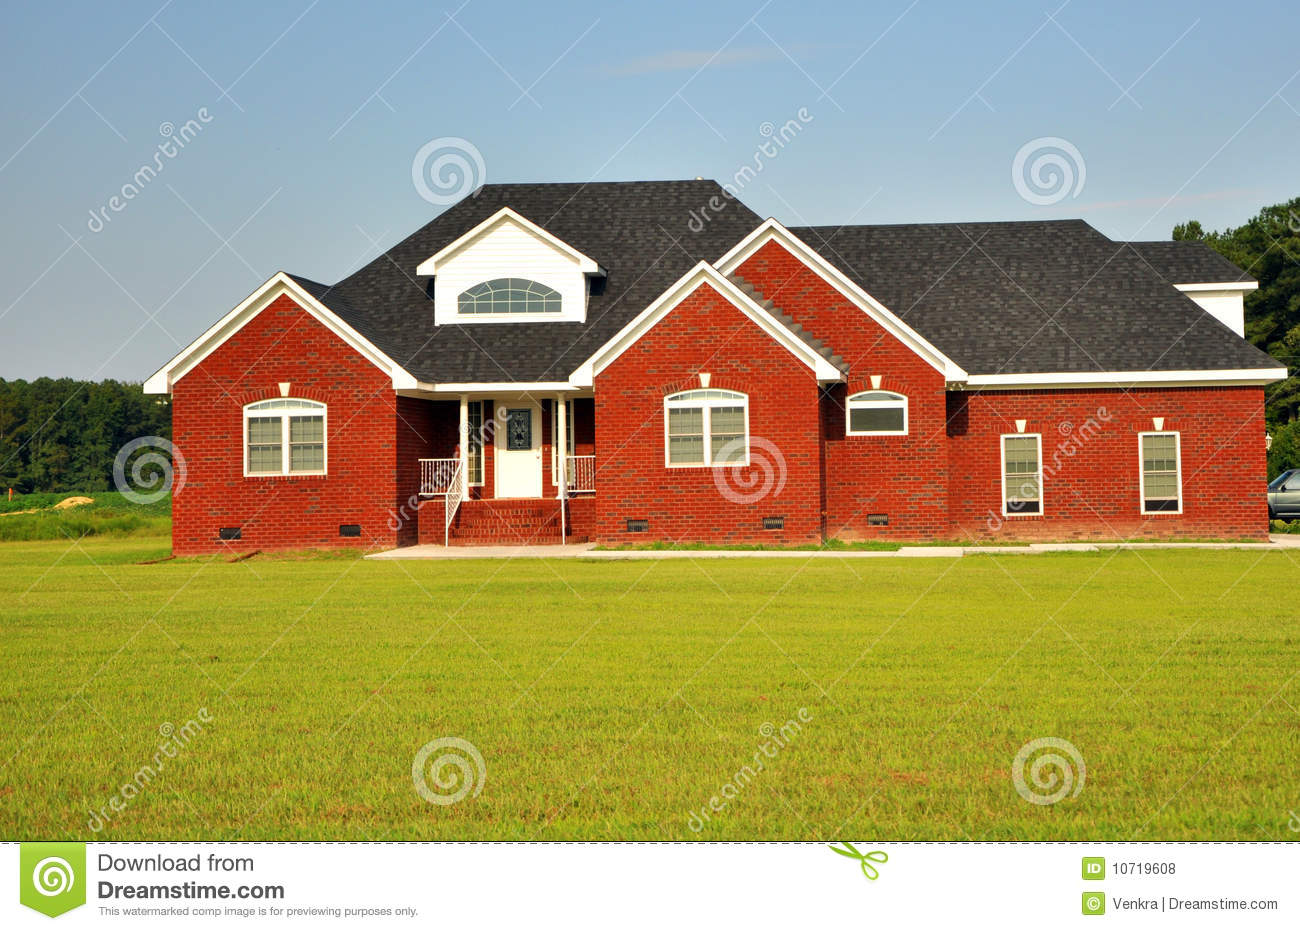 Country house royalty free stock photos image 10719608 for Country house online